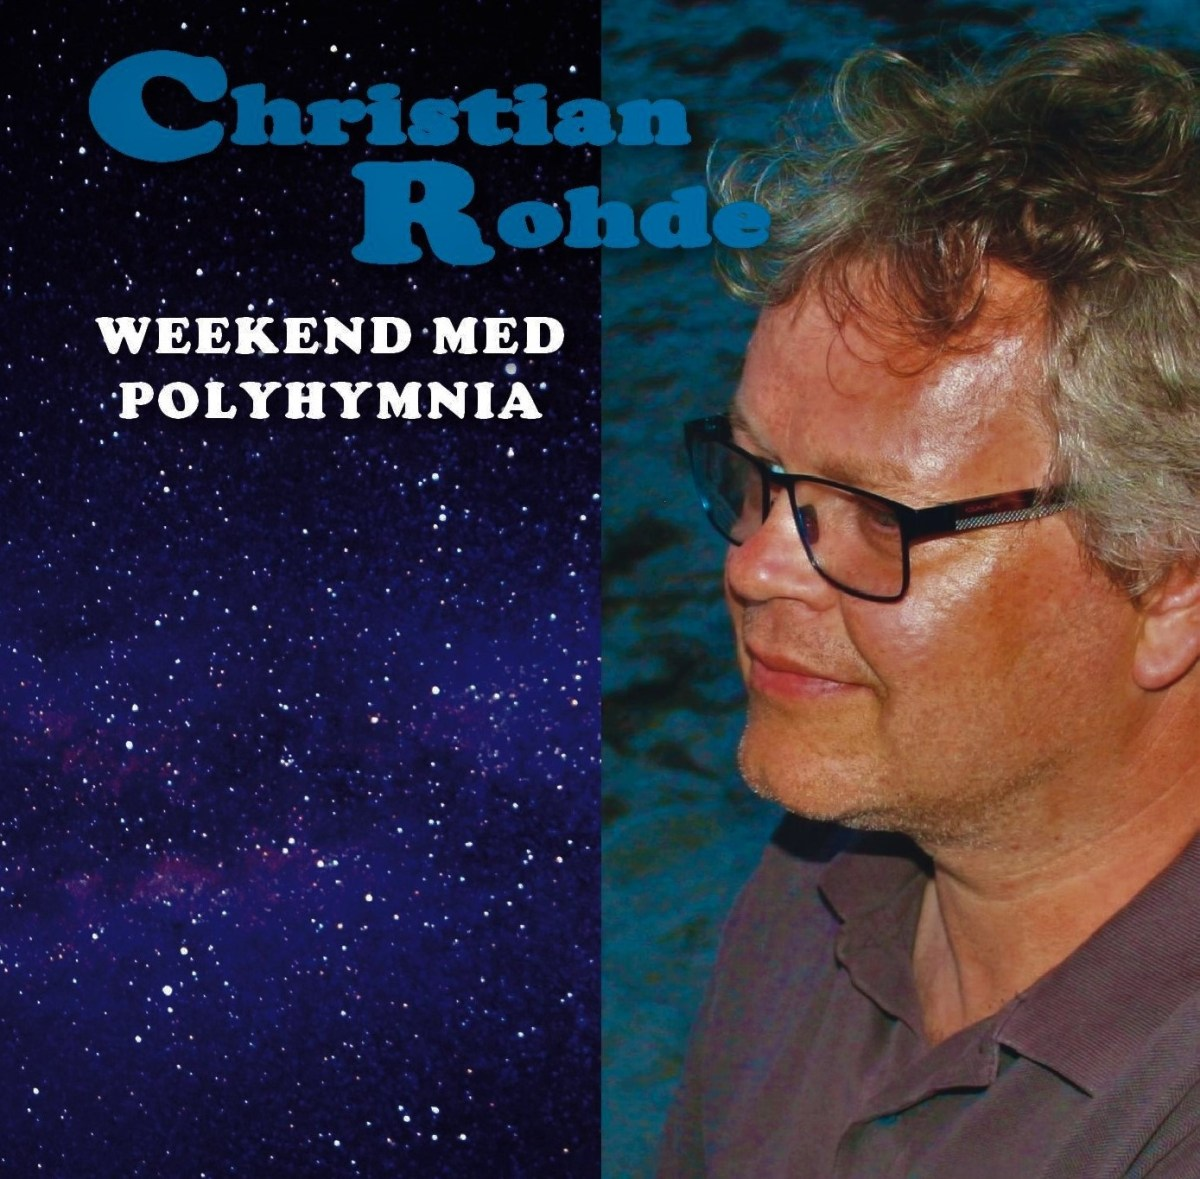 Anmeldelse: Christian Rohde: Weekend med Polyhymnia (Criz Music CMCD 1003)